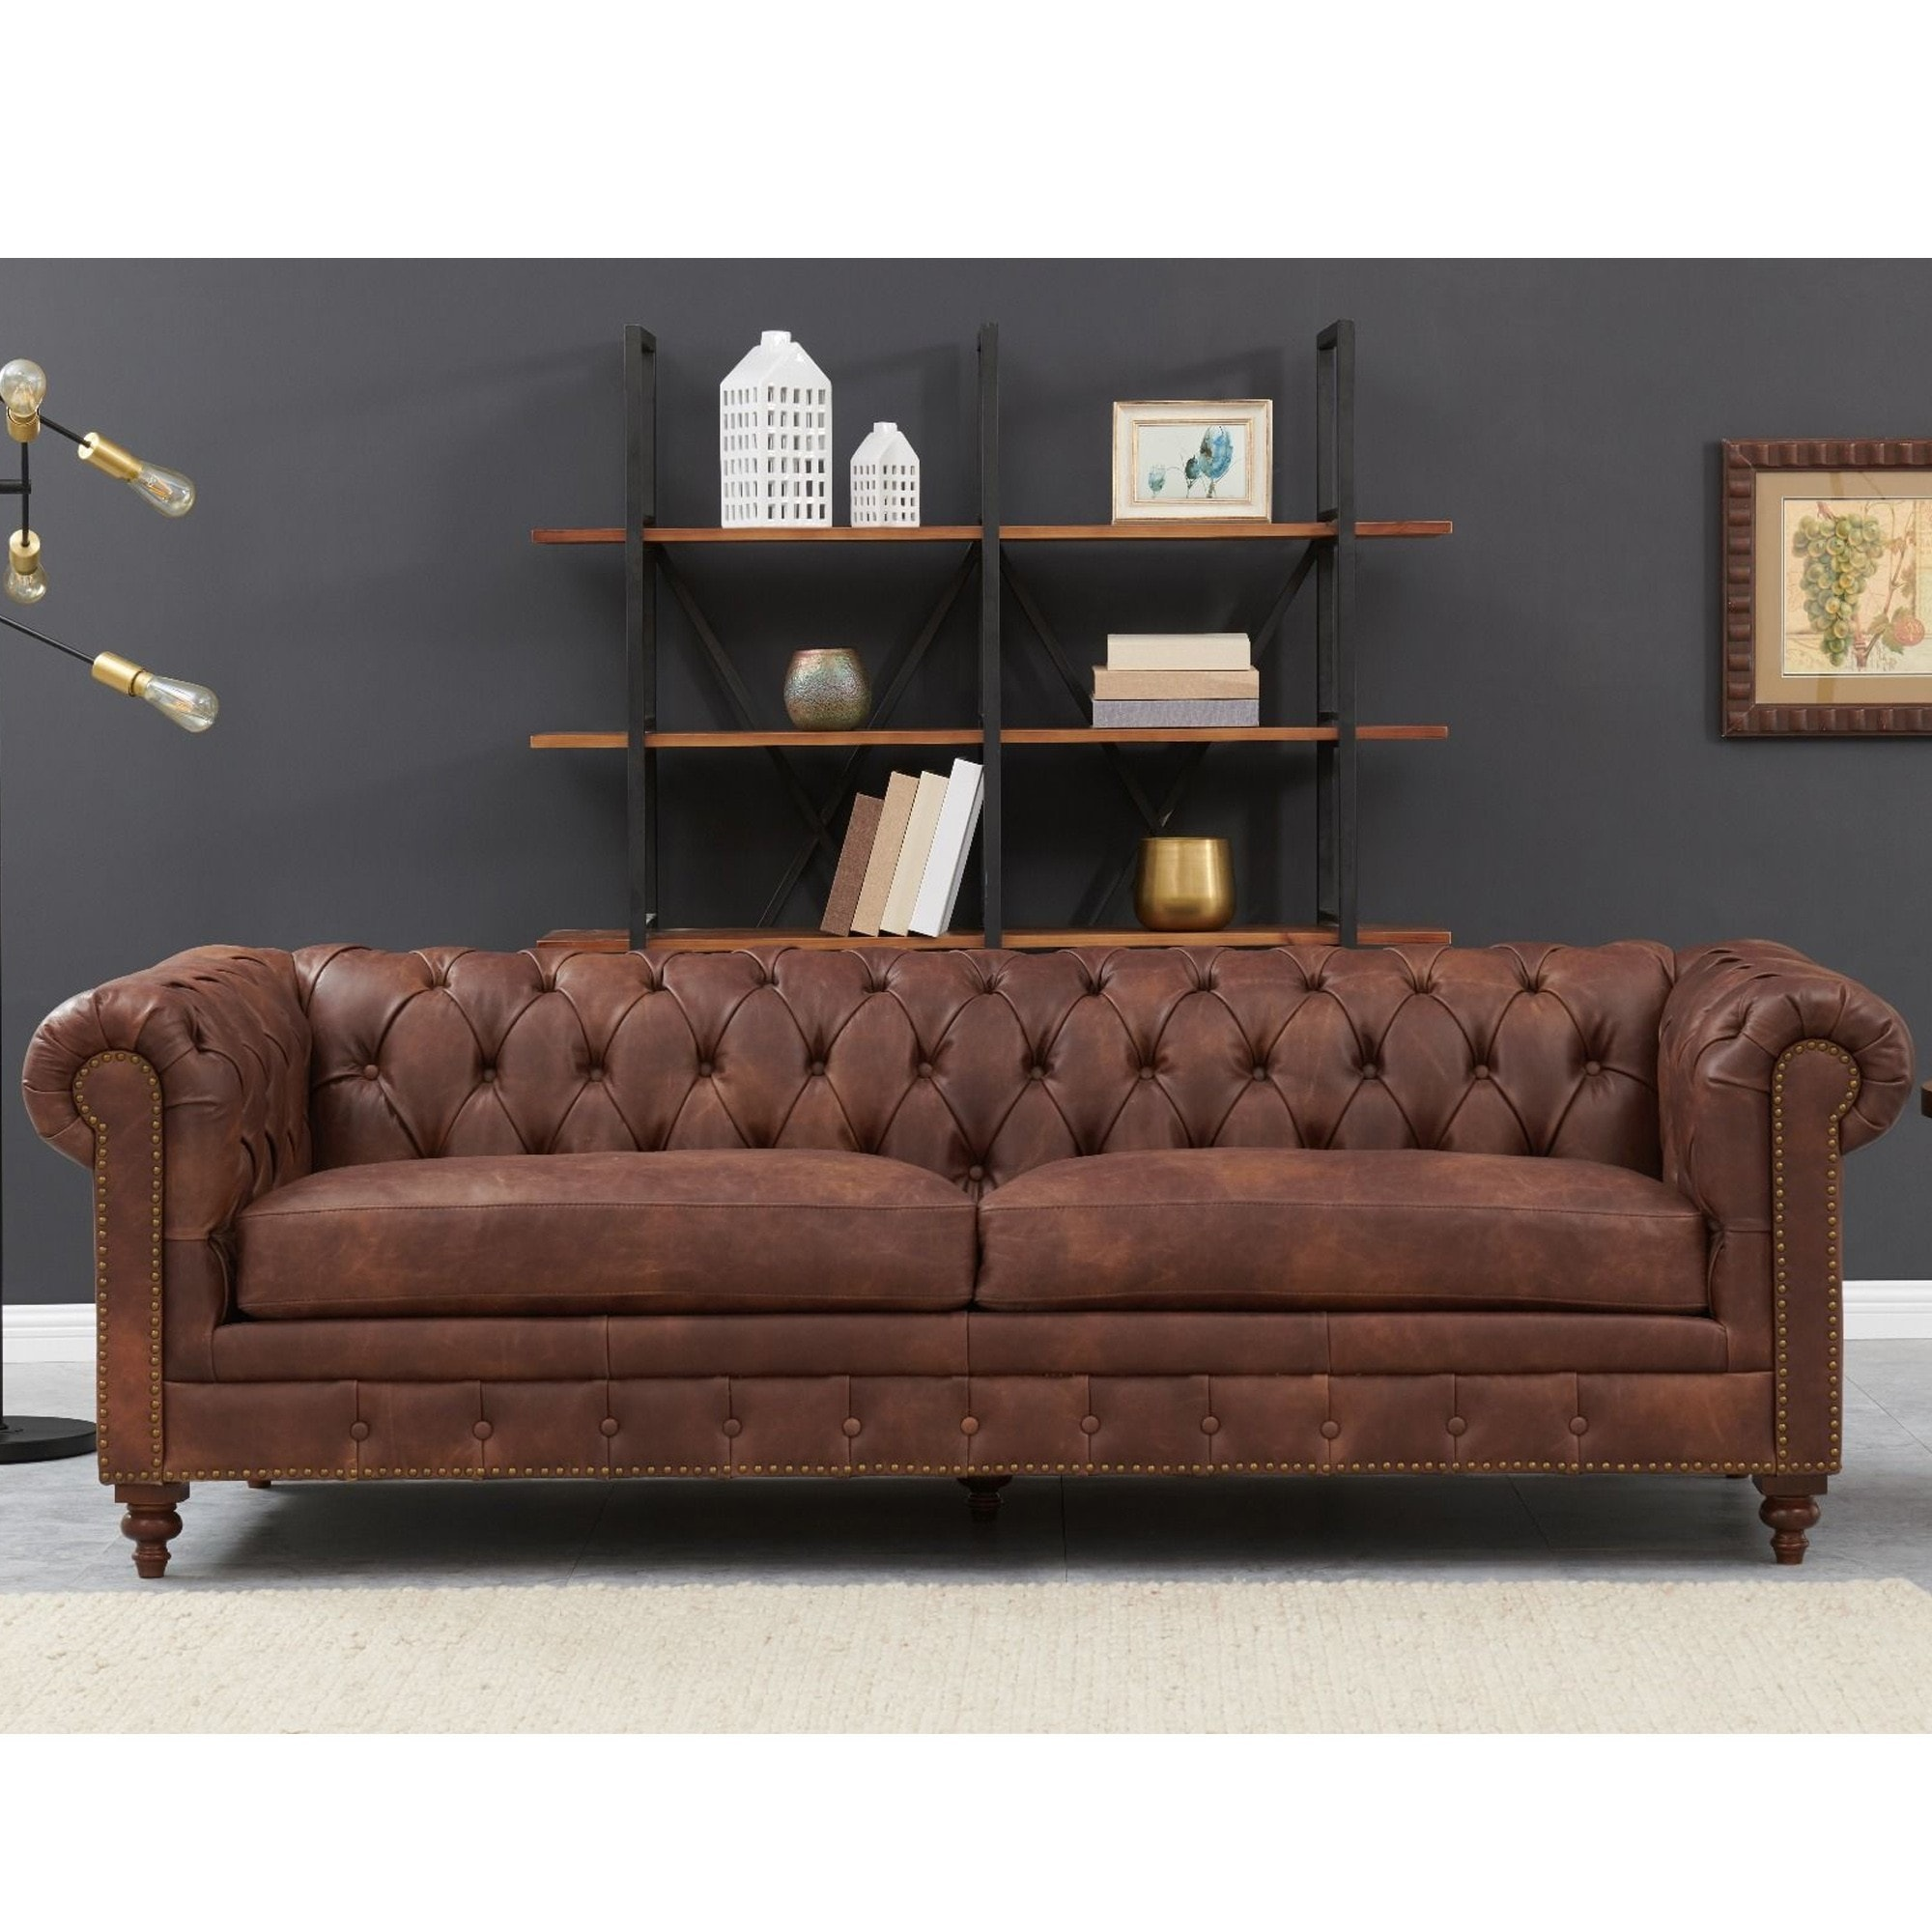 - Chesterfield 3 Seater Brown Leather Brown Leather Sofa